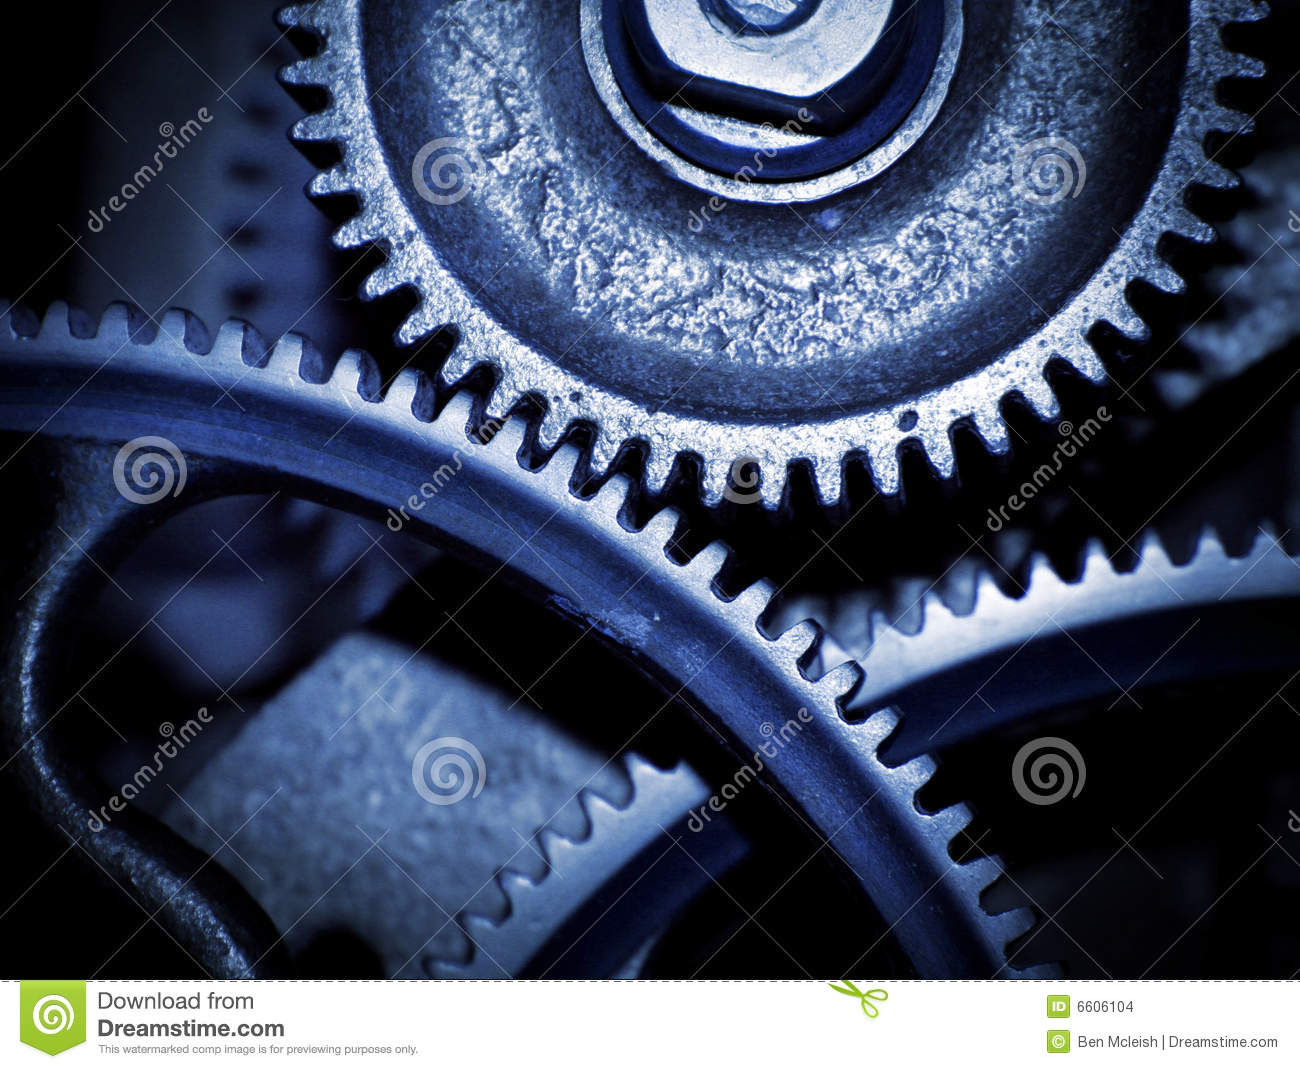 cogs of the machine